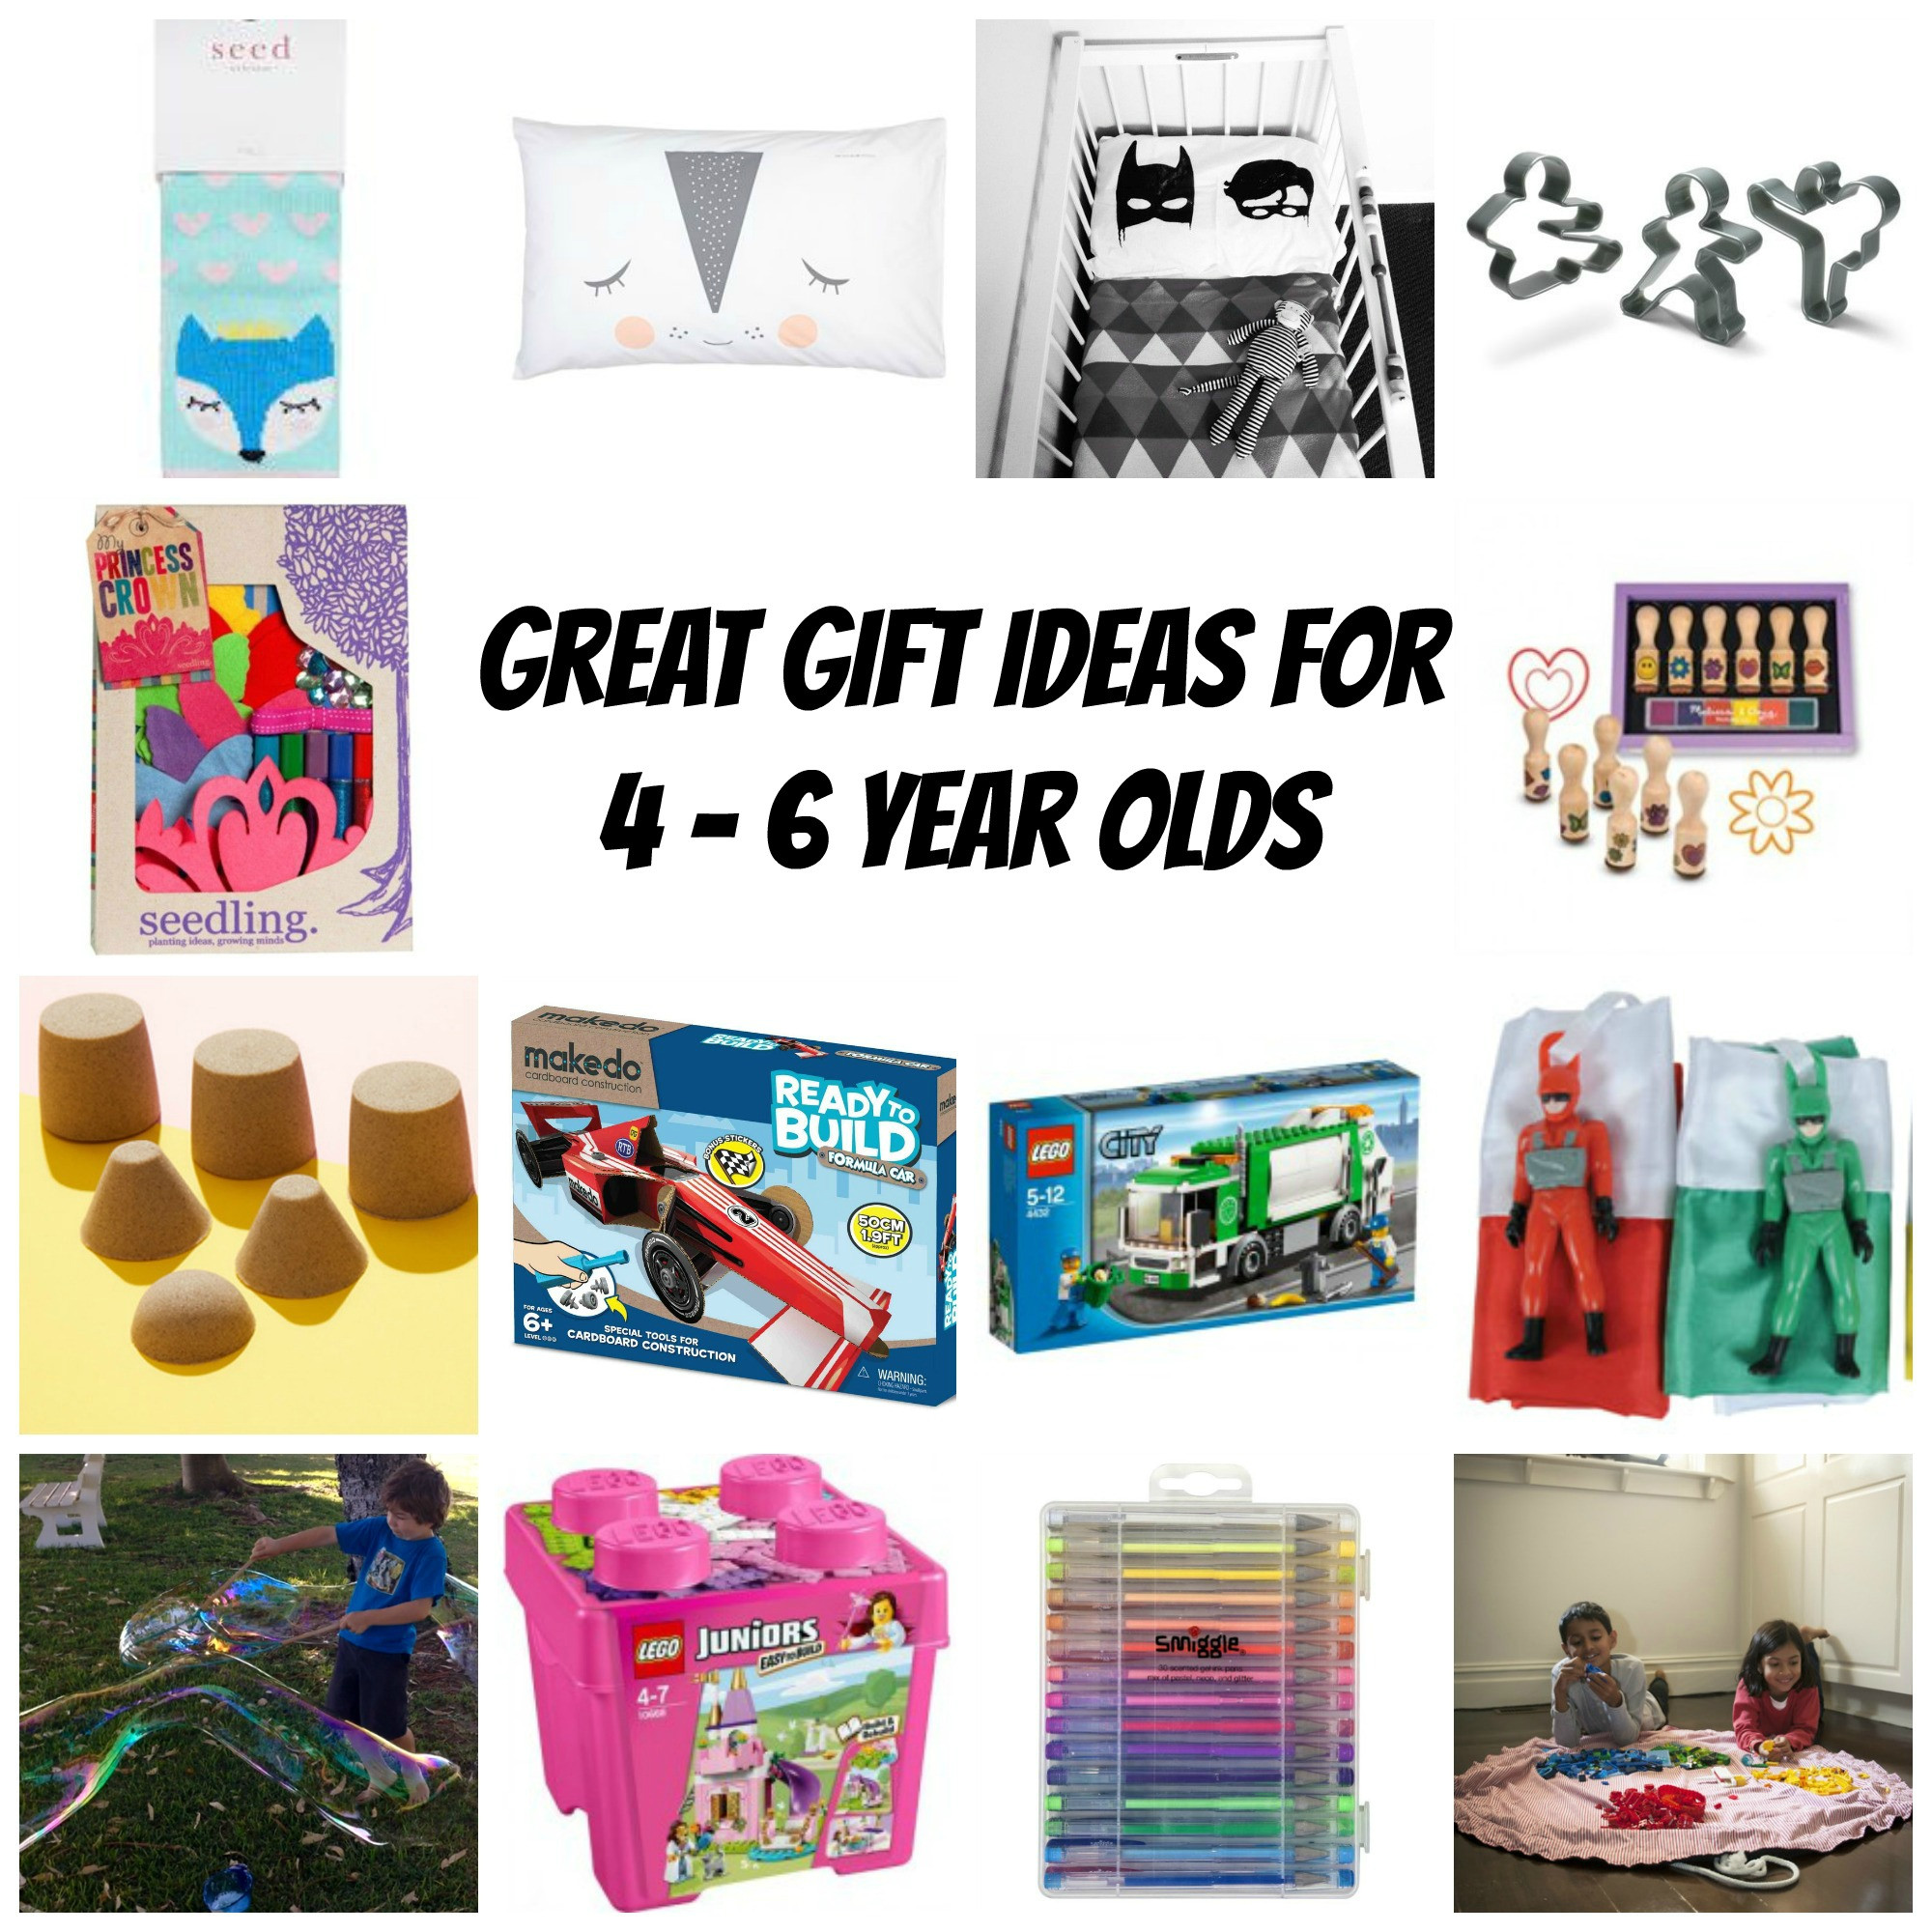 Best ideas about 6 Year Old Gift Ideas . Save or Pin Great t ideas for 4 6 year olds Now.